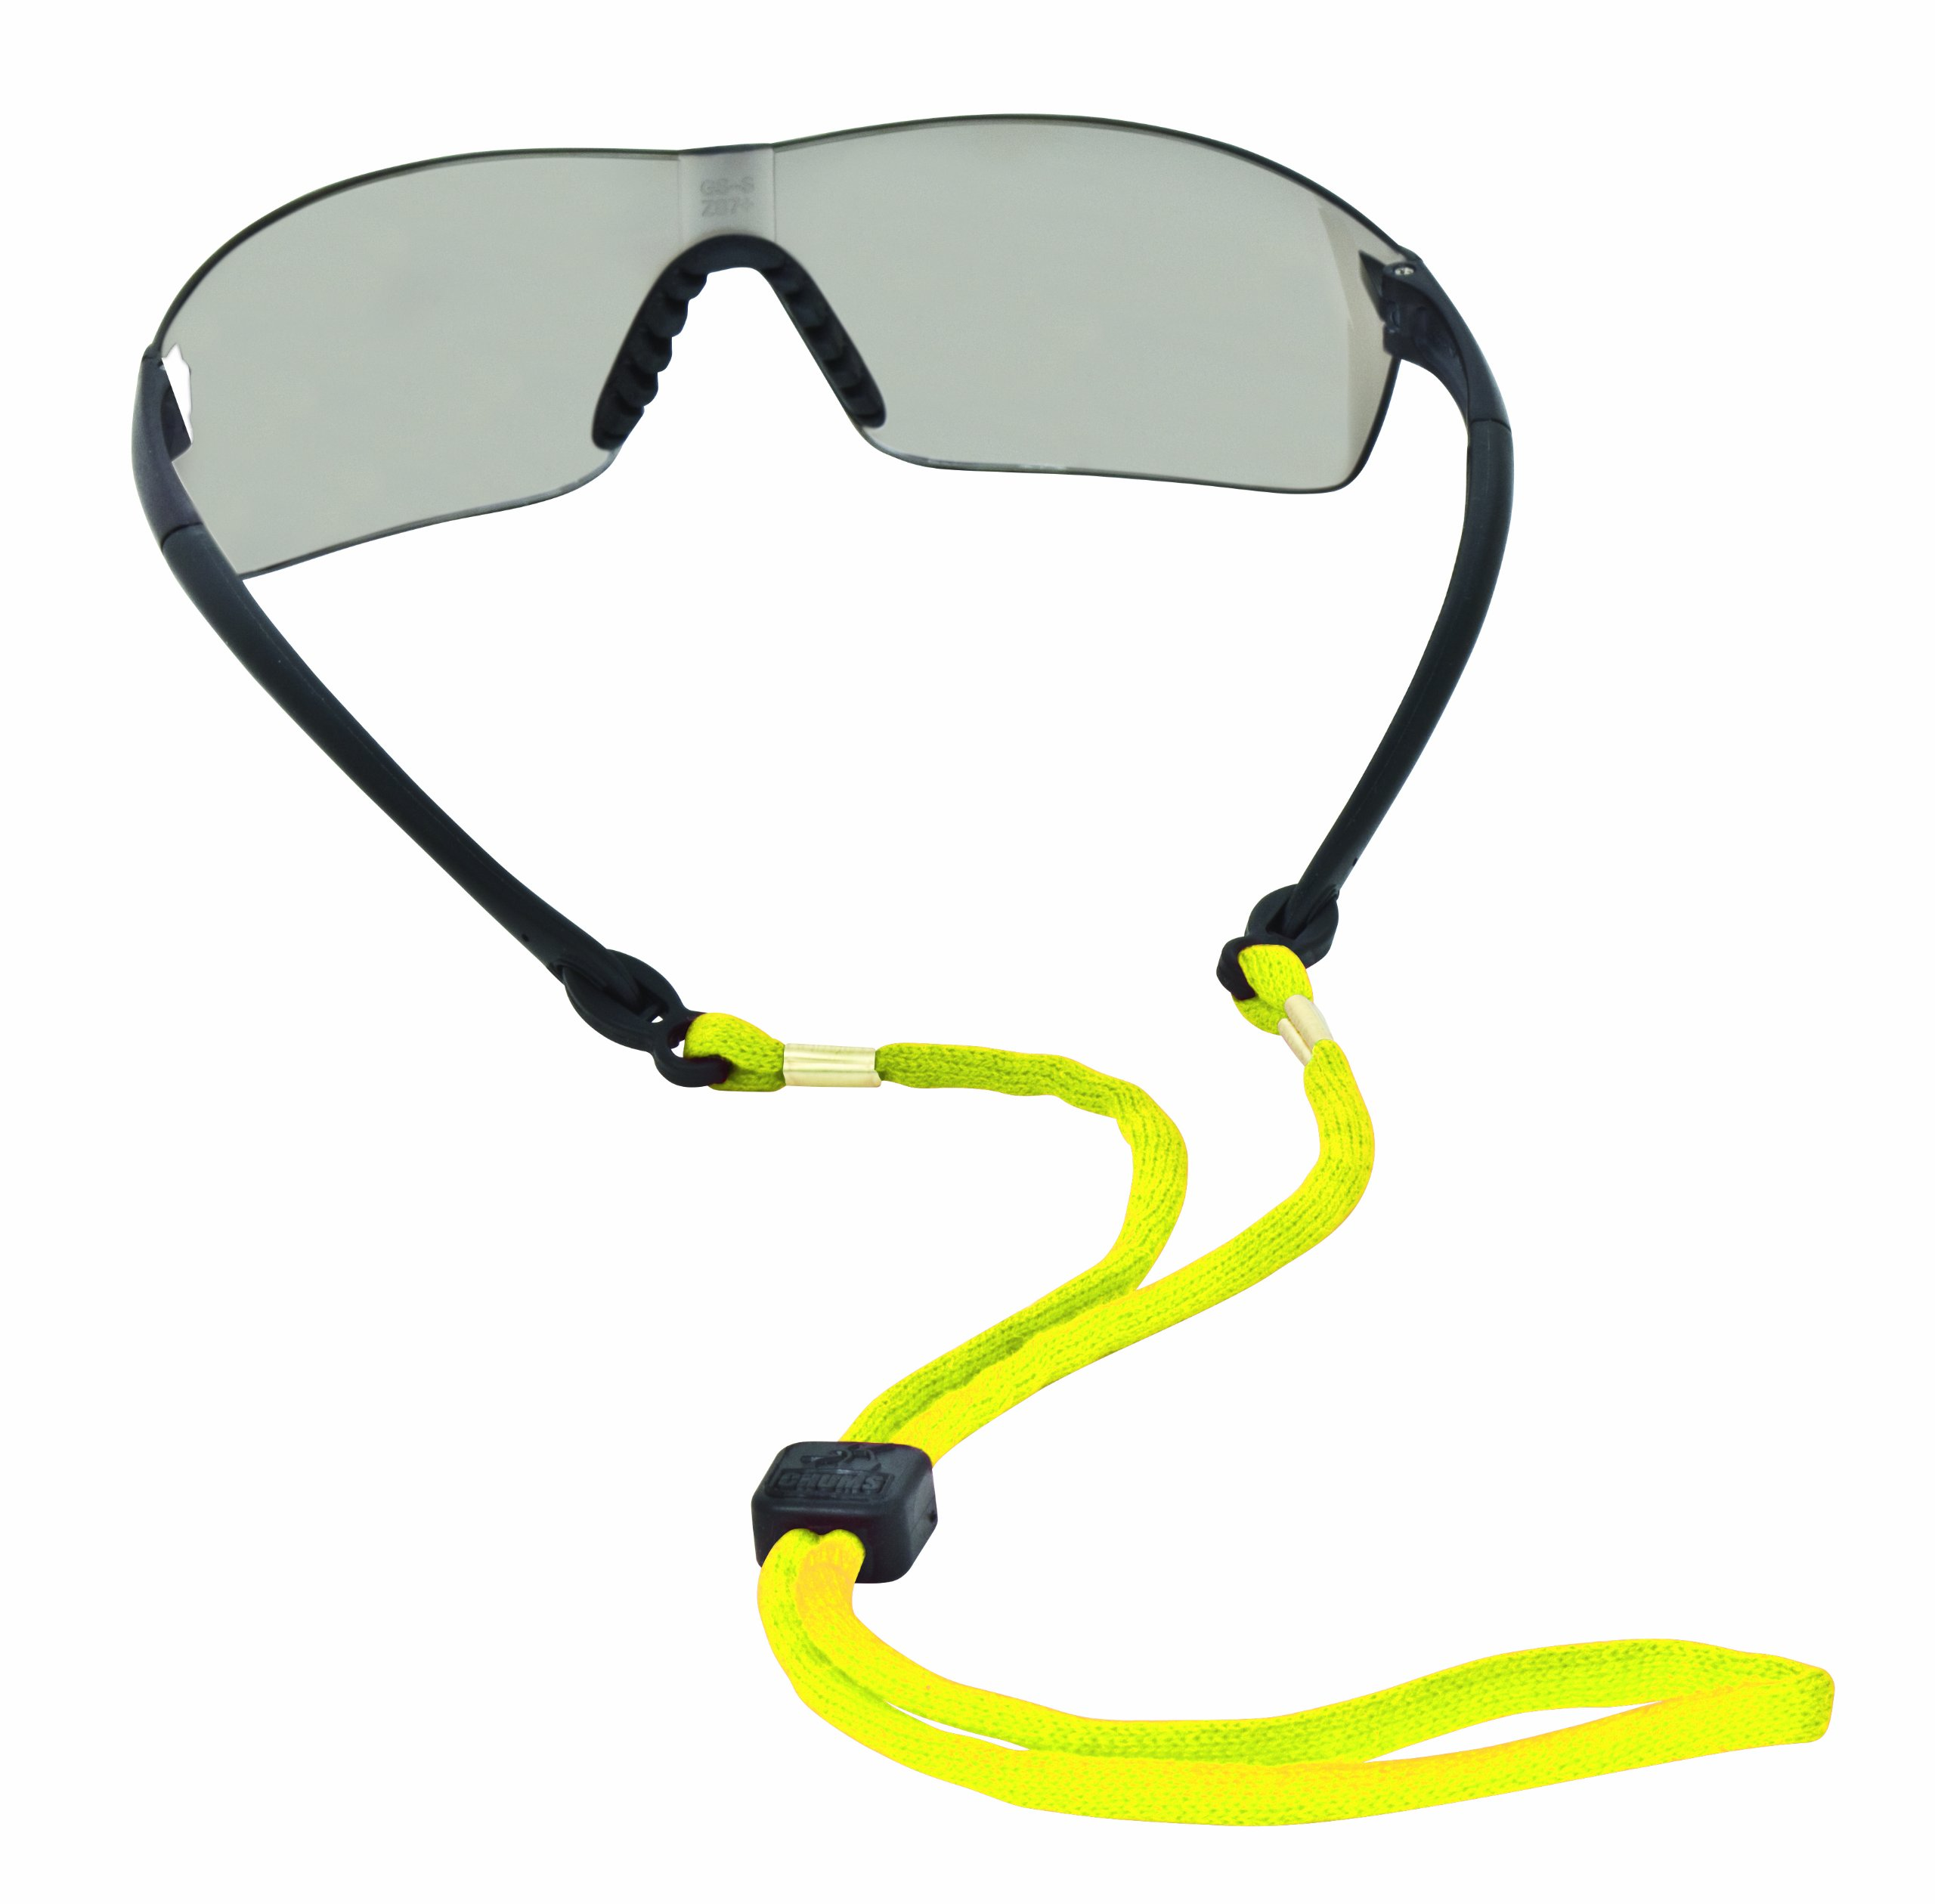 Chums Safety 12220 Cotton Eyewear Retainer with Center Punched Breakaway, Bright Yellow (Pack of 6)